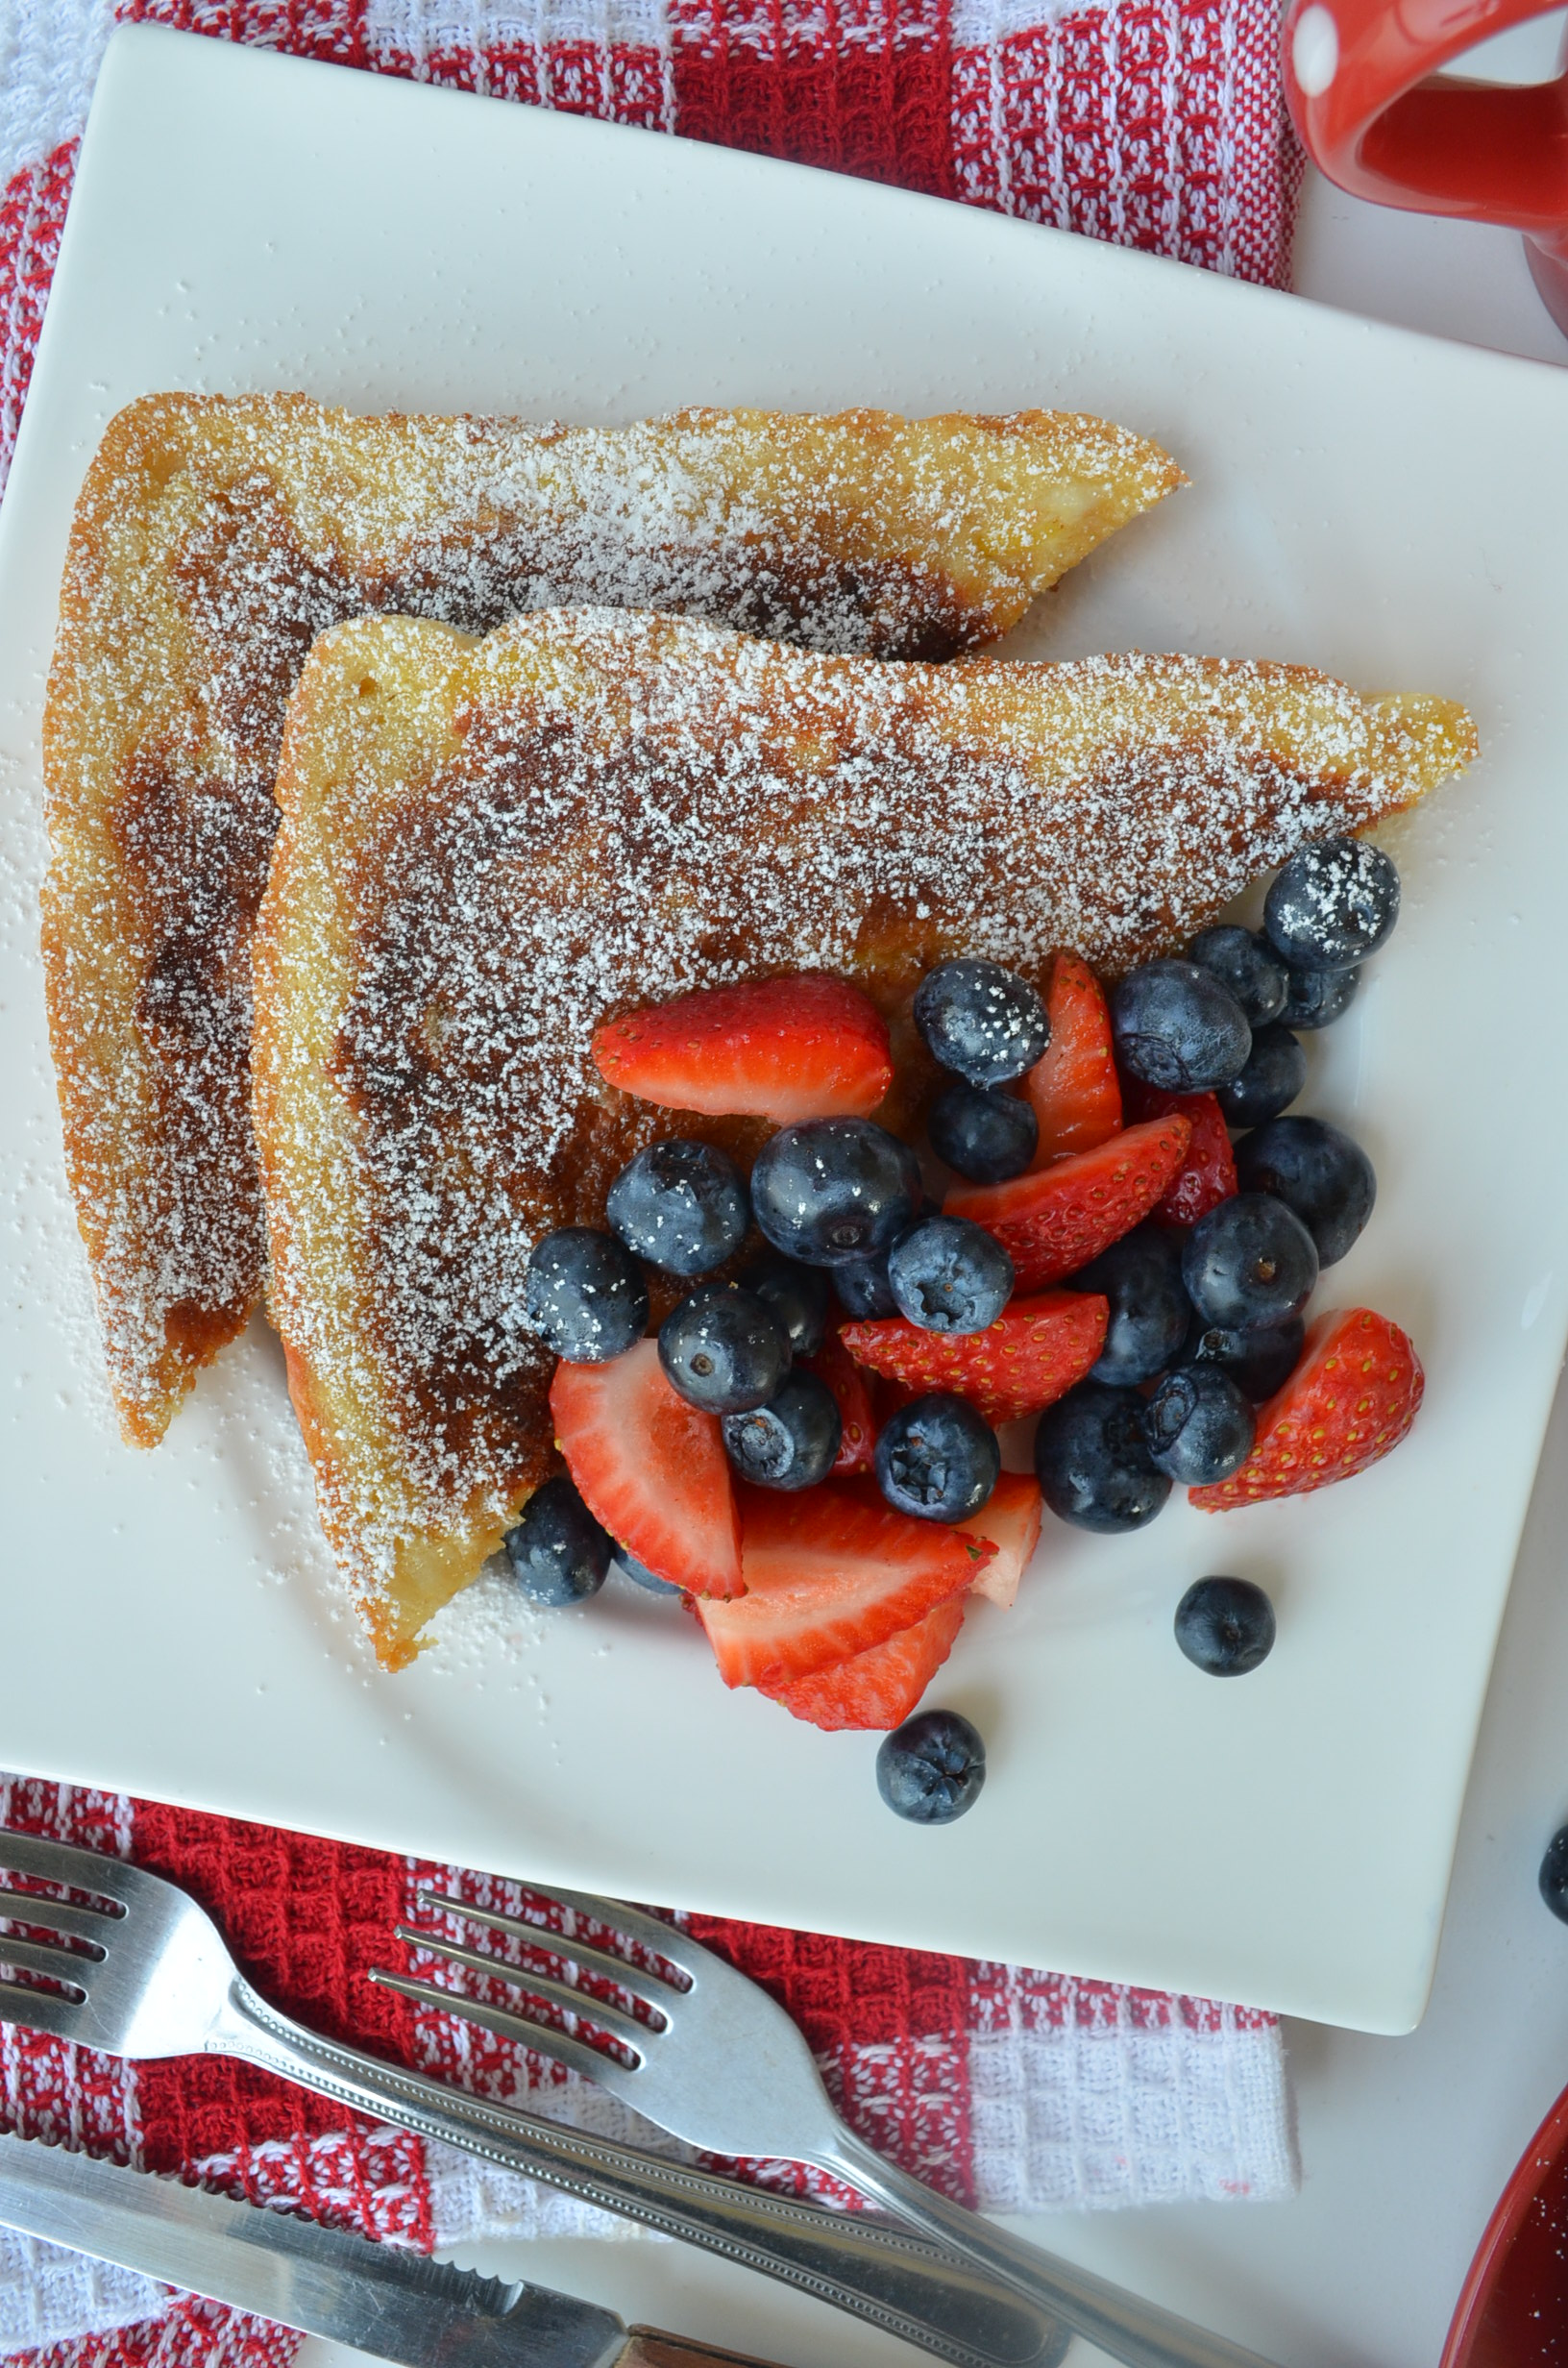 Singe Serve French Toast